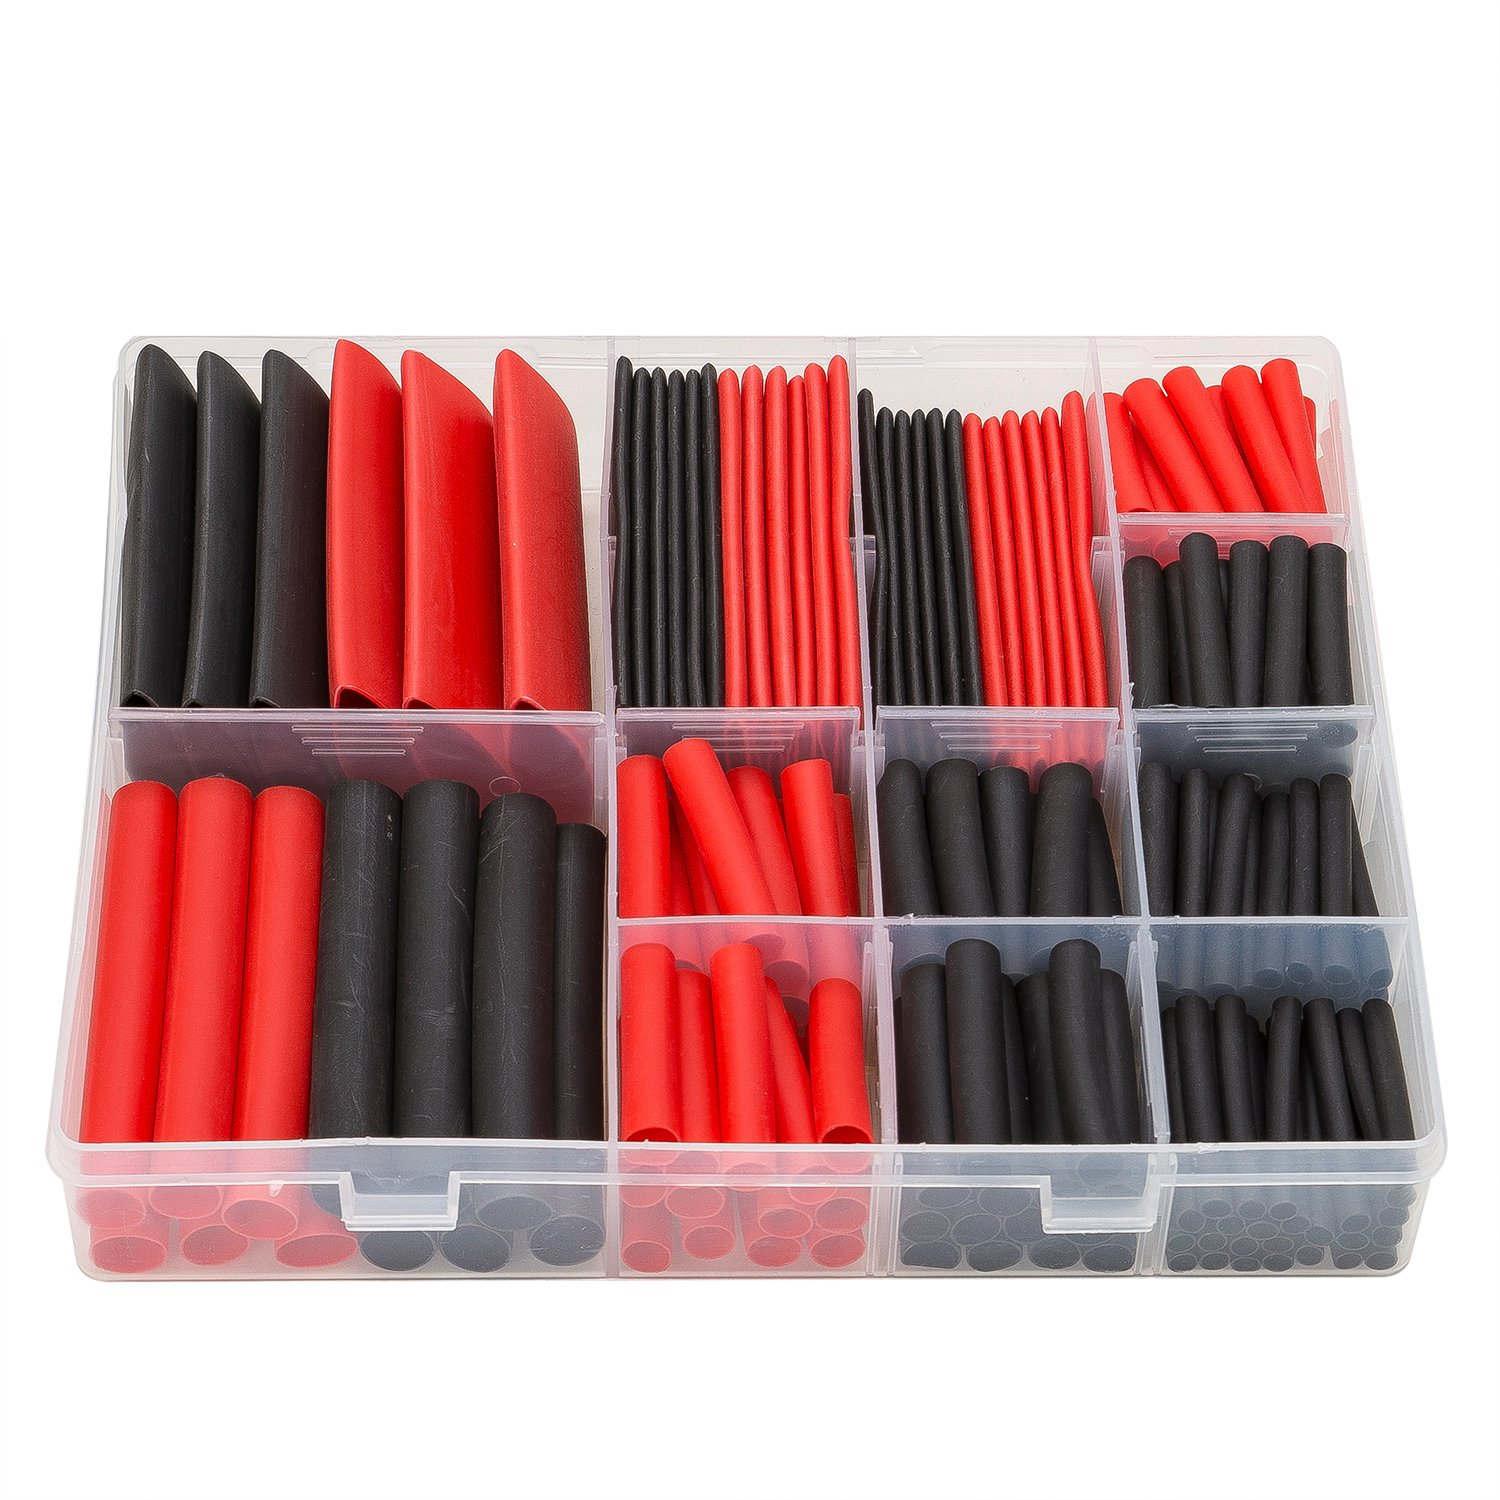 SwitchMe 198Pcs 3:1 Heat Shrink Tubing Double-wall Adhesive Lined Shrink Wrap Tubing Assortment Kit 7 Size 1'' 3/4'' 1/2'' 3/8'' 1/4'' 3/16'' 1/8'' Mix Black Red by SwitchMe